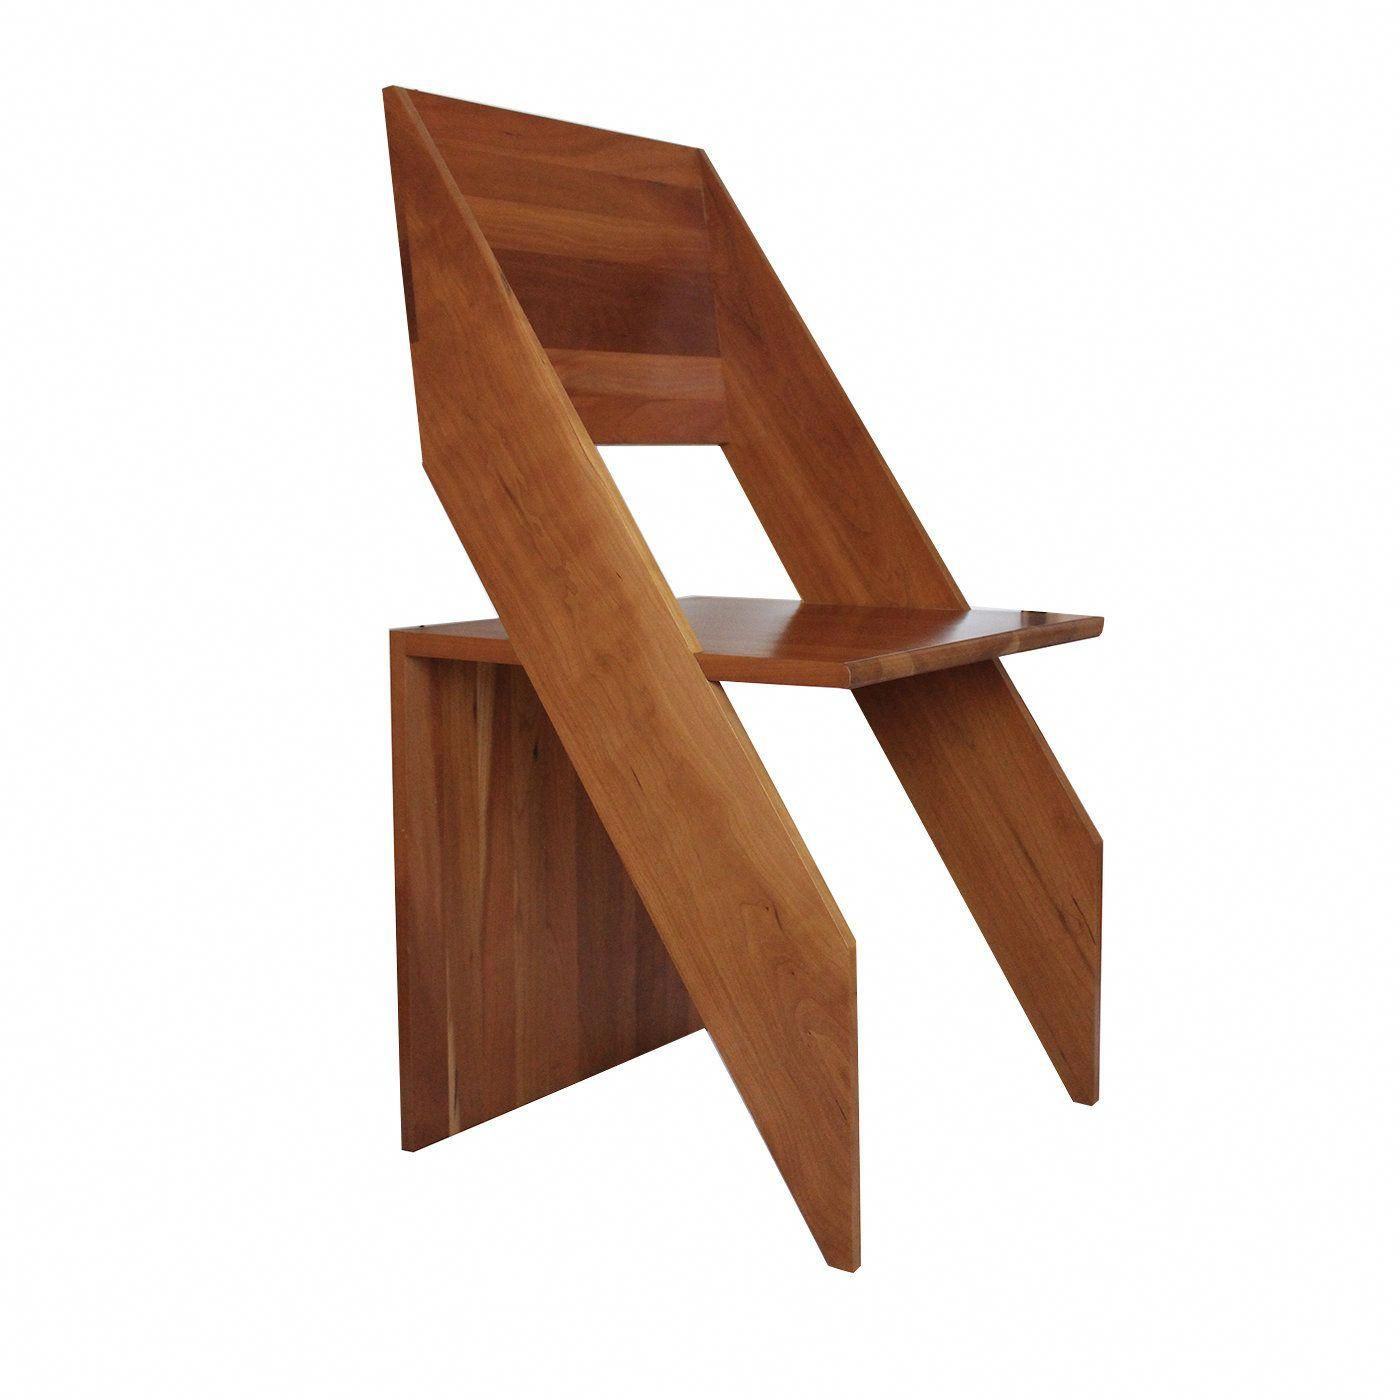 For Rent Chairs And Tables In 2020 Chair Design Wooden Diy Chair Wooden Chair